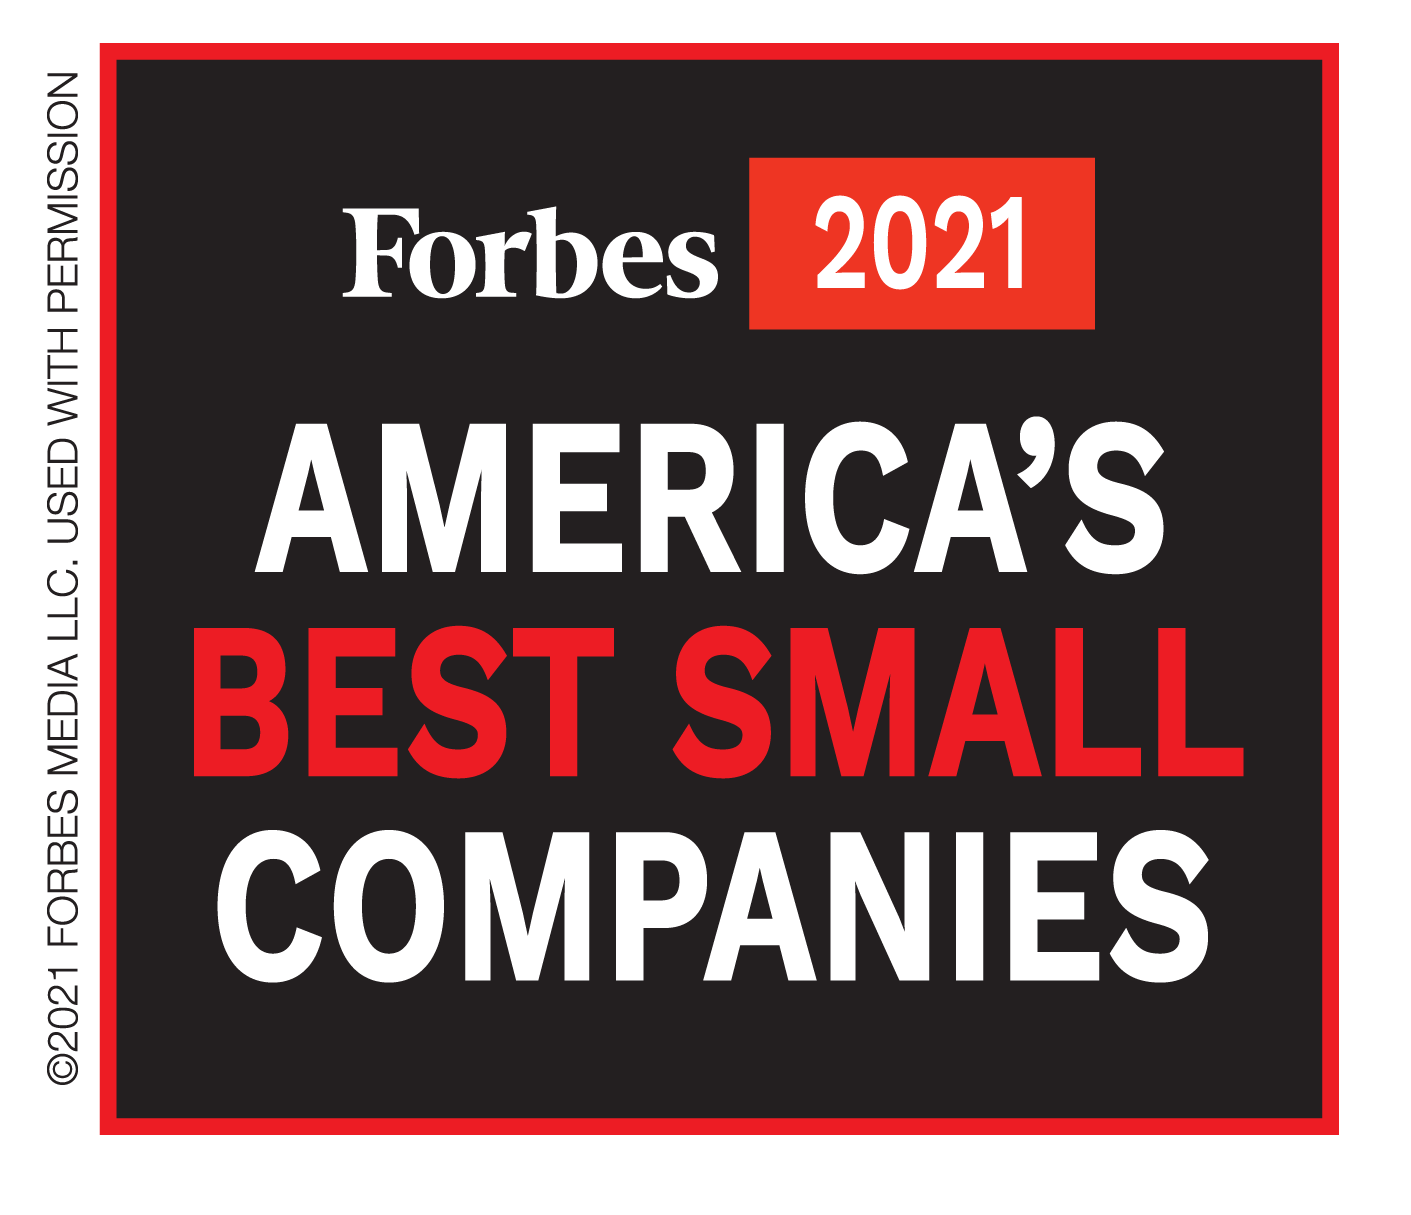 Forbes America's Best Small Companies